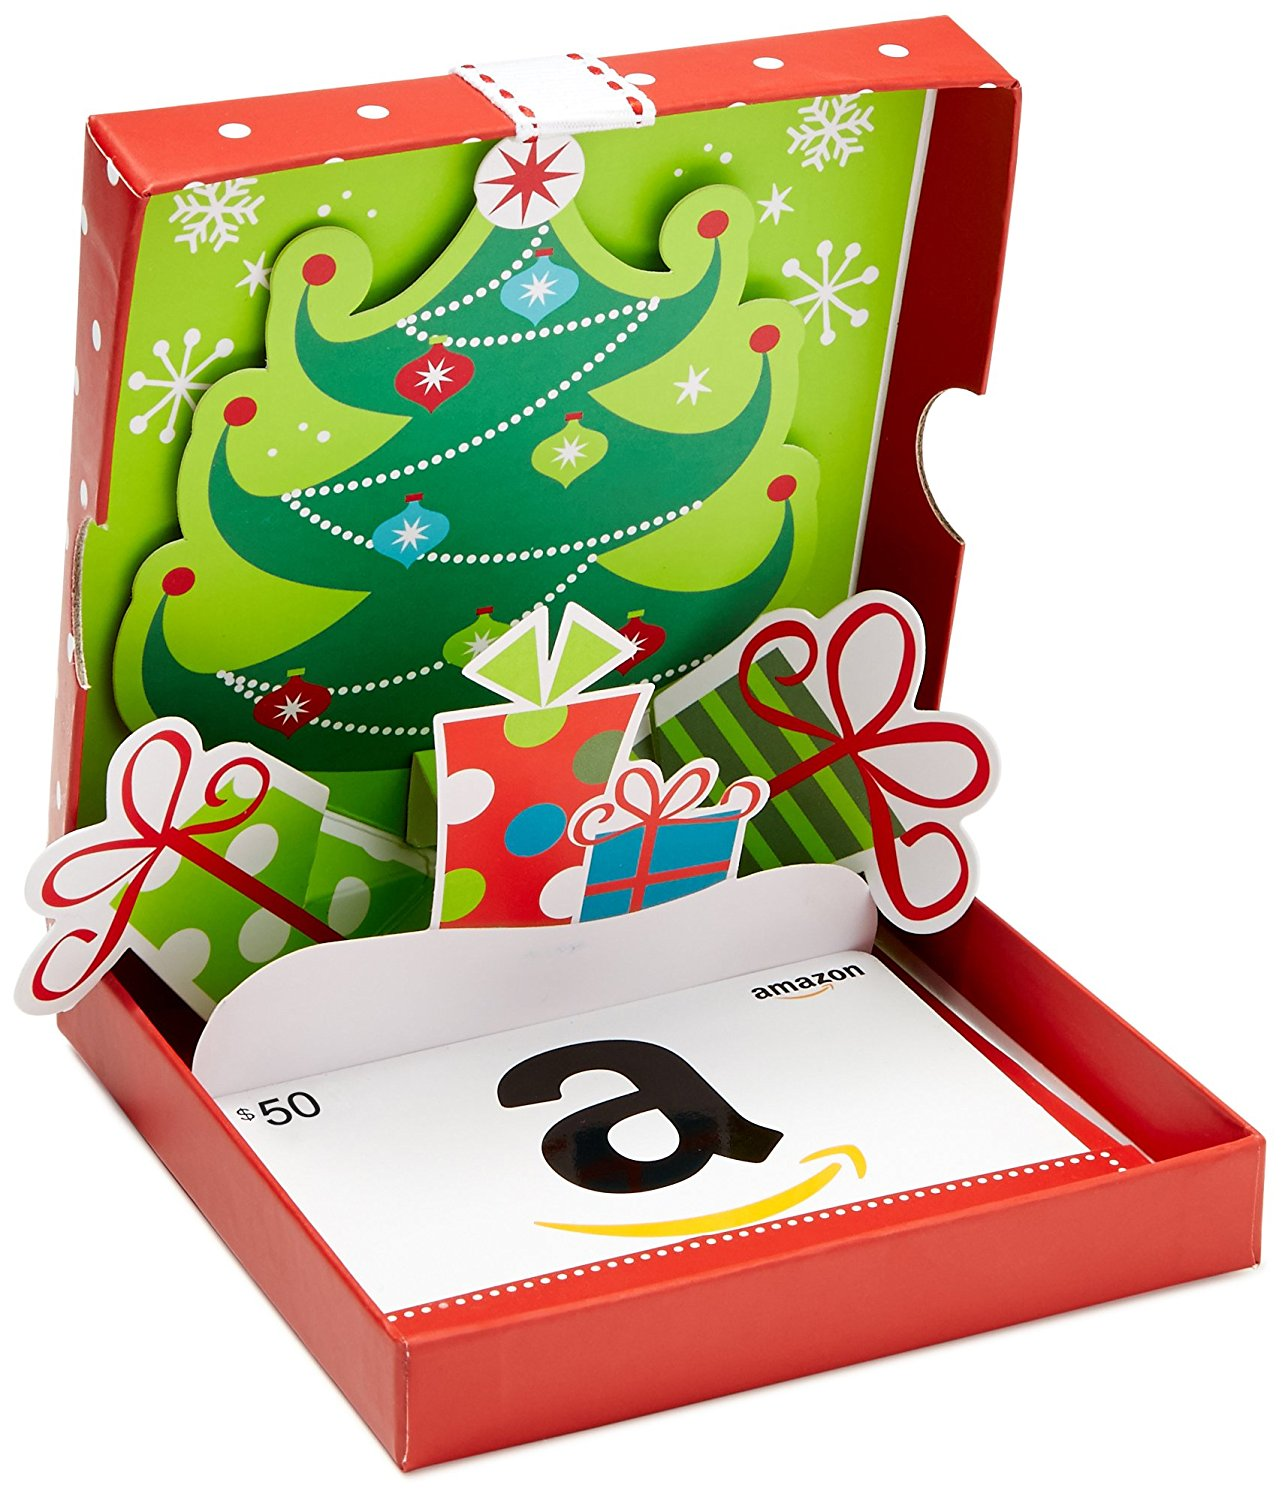 $50 Amazon Christmas Gift Card Giveaway! Ends 12/25/17